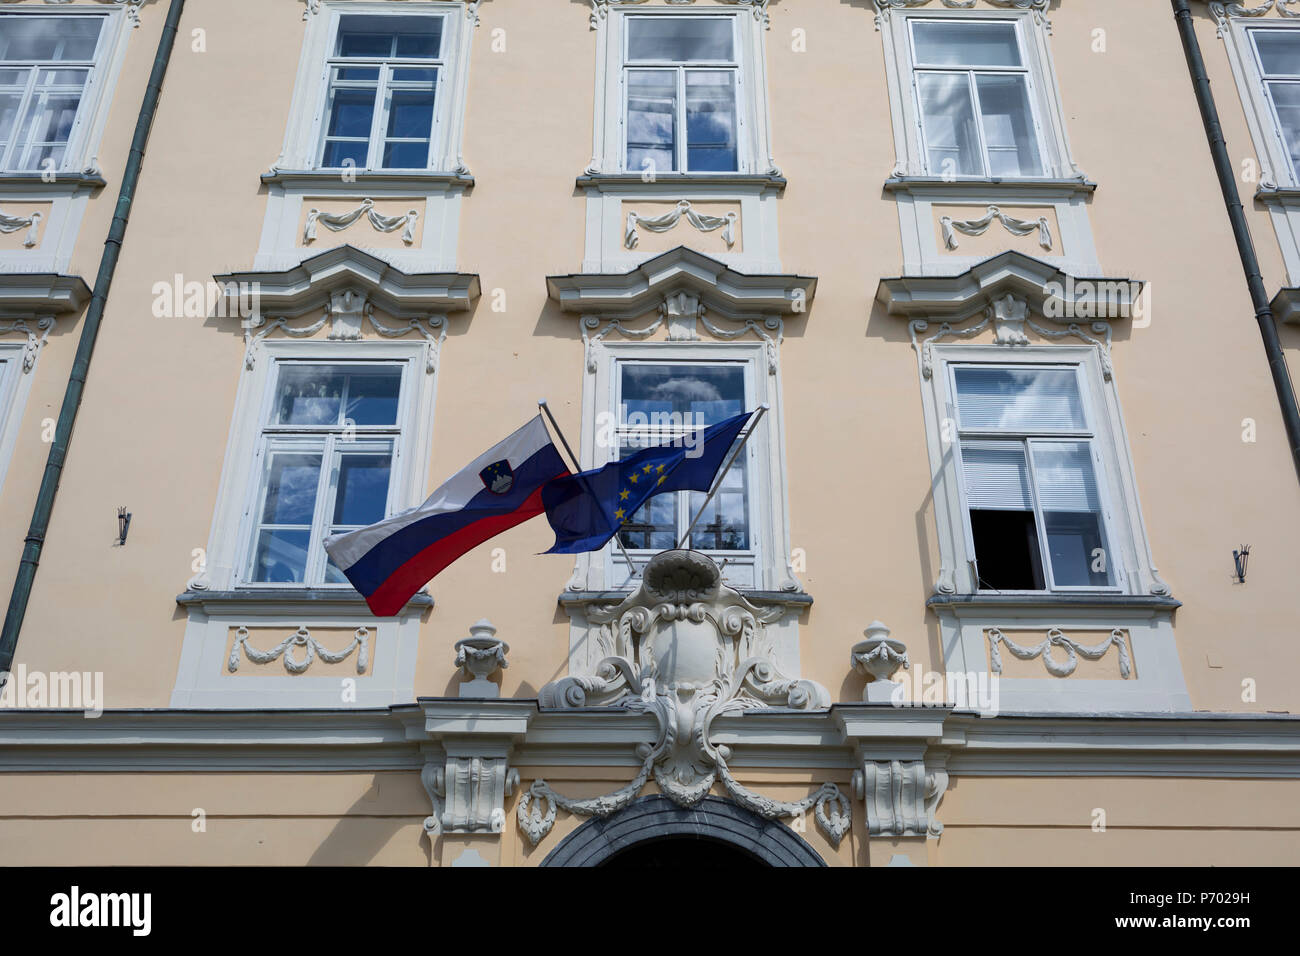 The Slovenian and the European Union flags hang together outside a building in the Slovenian capital, Ljubljana, on 27th June 2018, in Ljubljana, Slovenia. - Stock Image